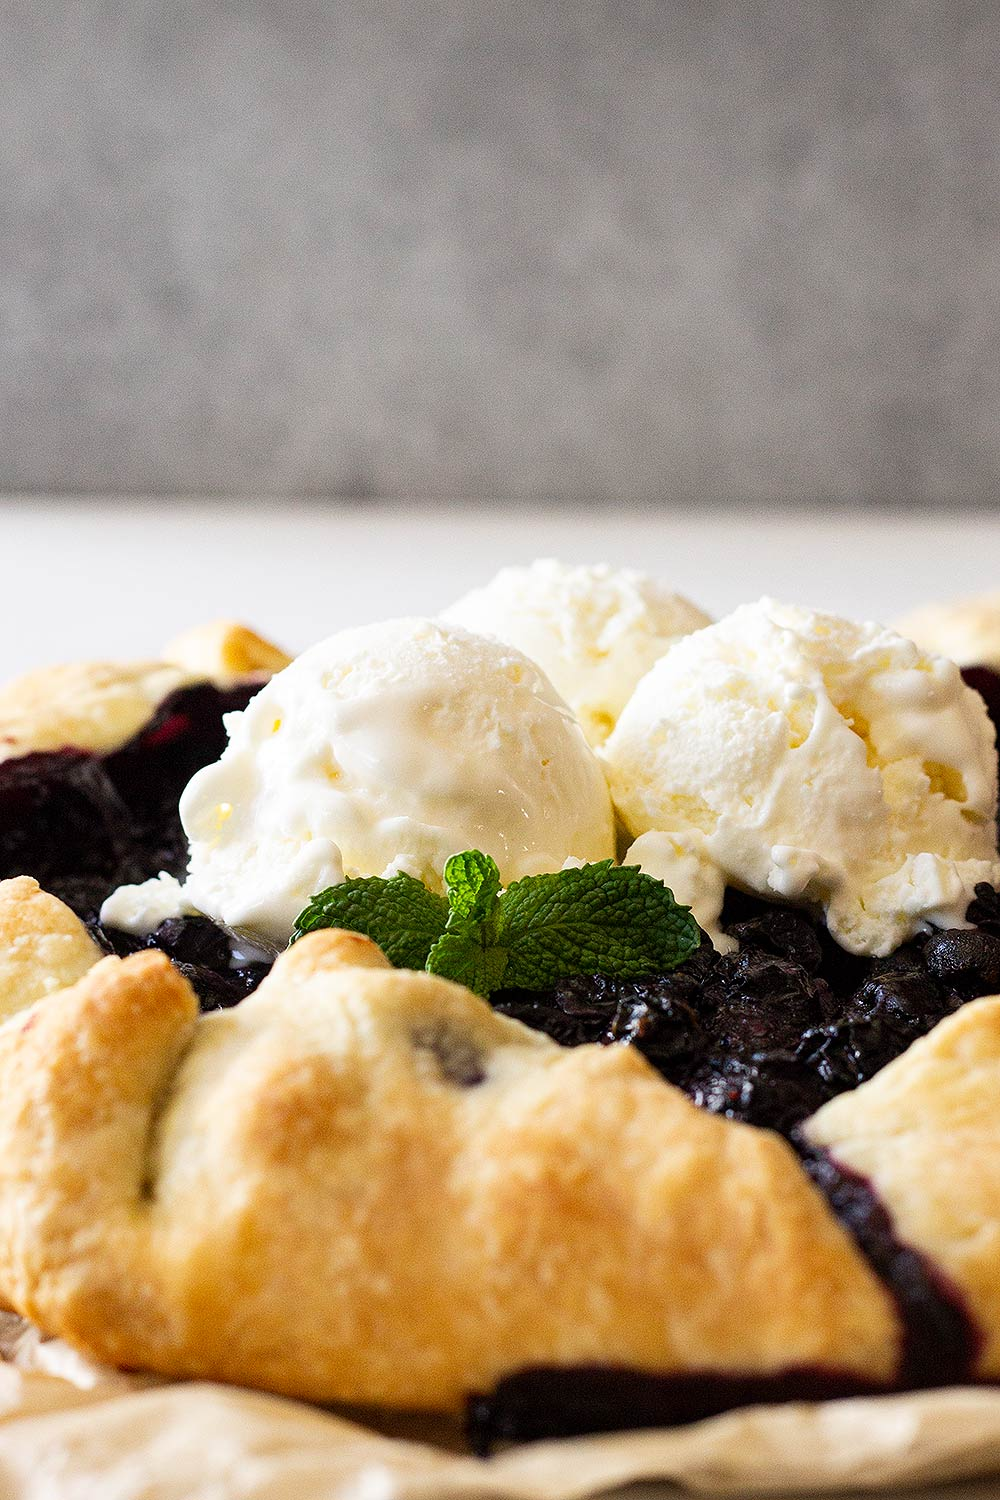 Blueberry galette topped with vanilla ice cream